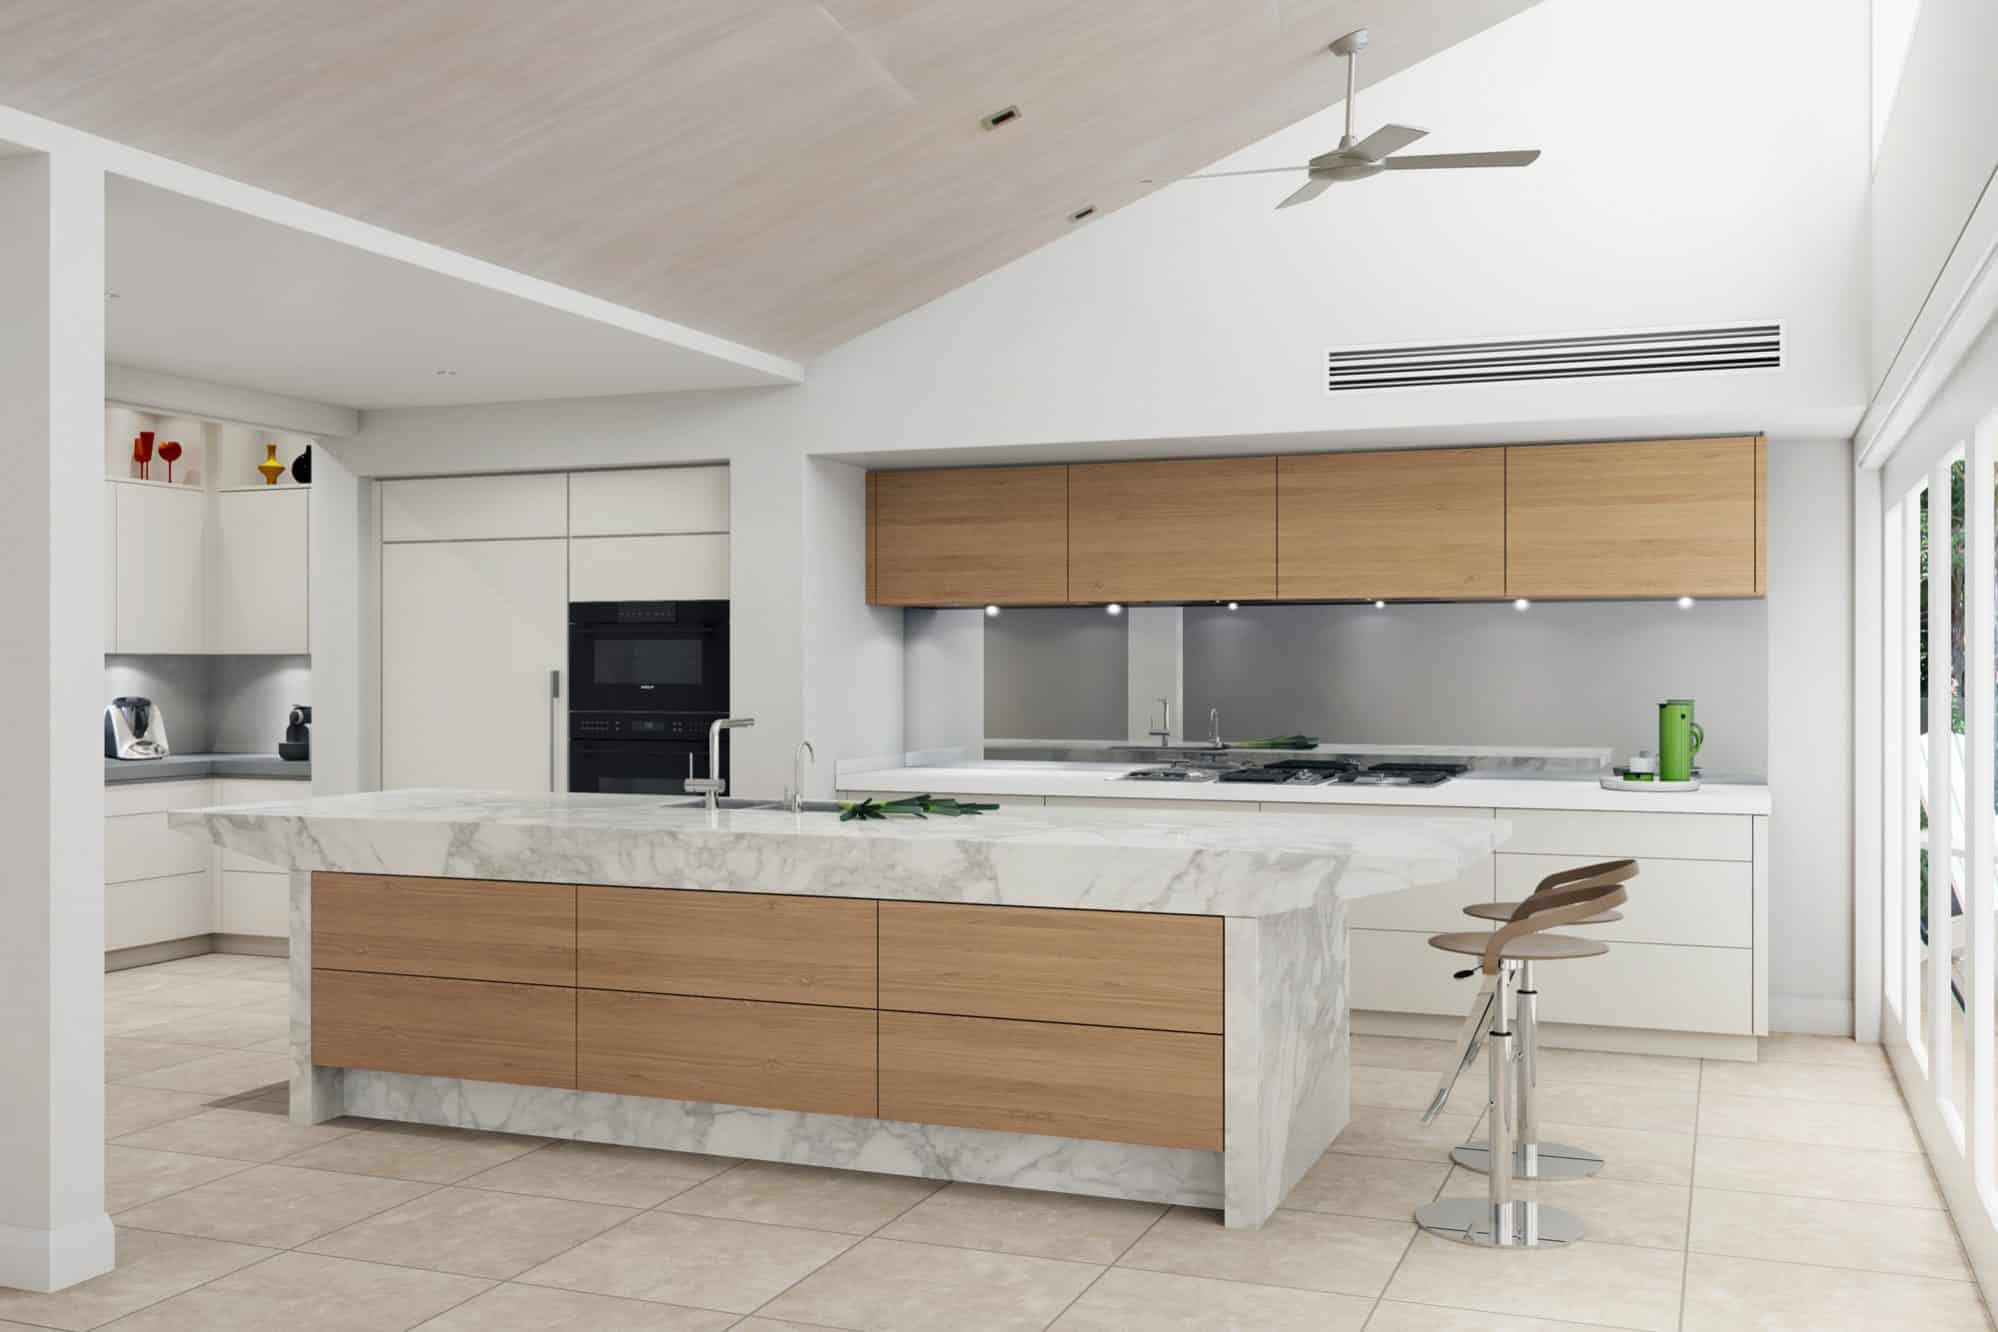 Artists impression of the kitchen